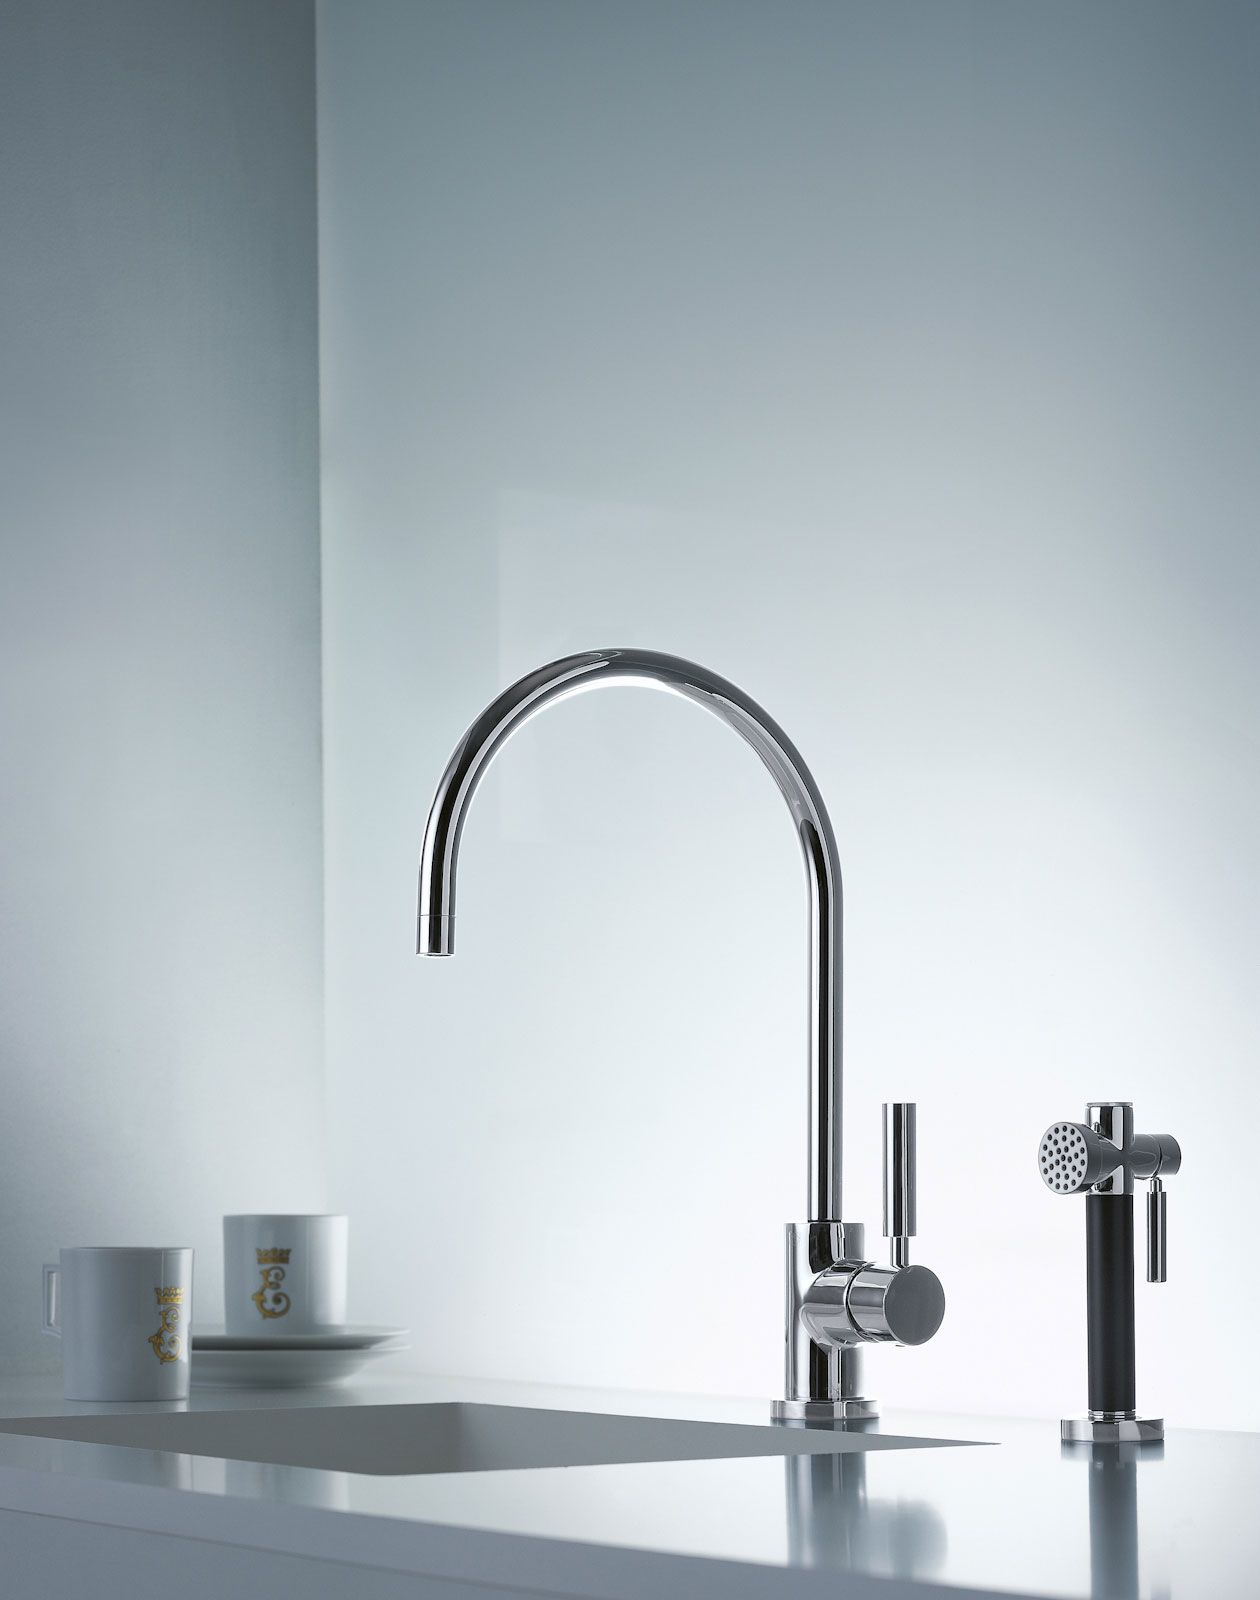 Dornbracht Tara Classic With Handspray Wyckoff Sink And